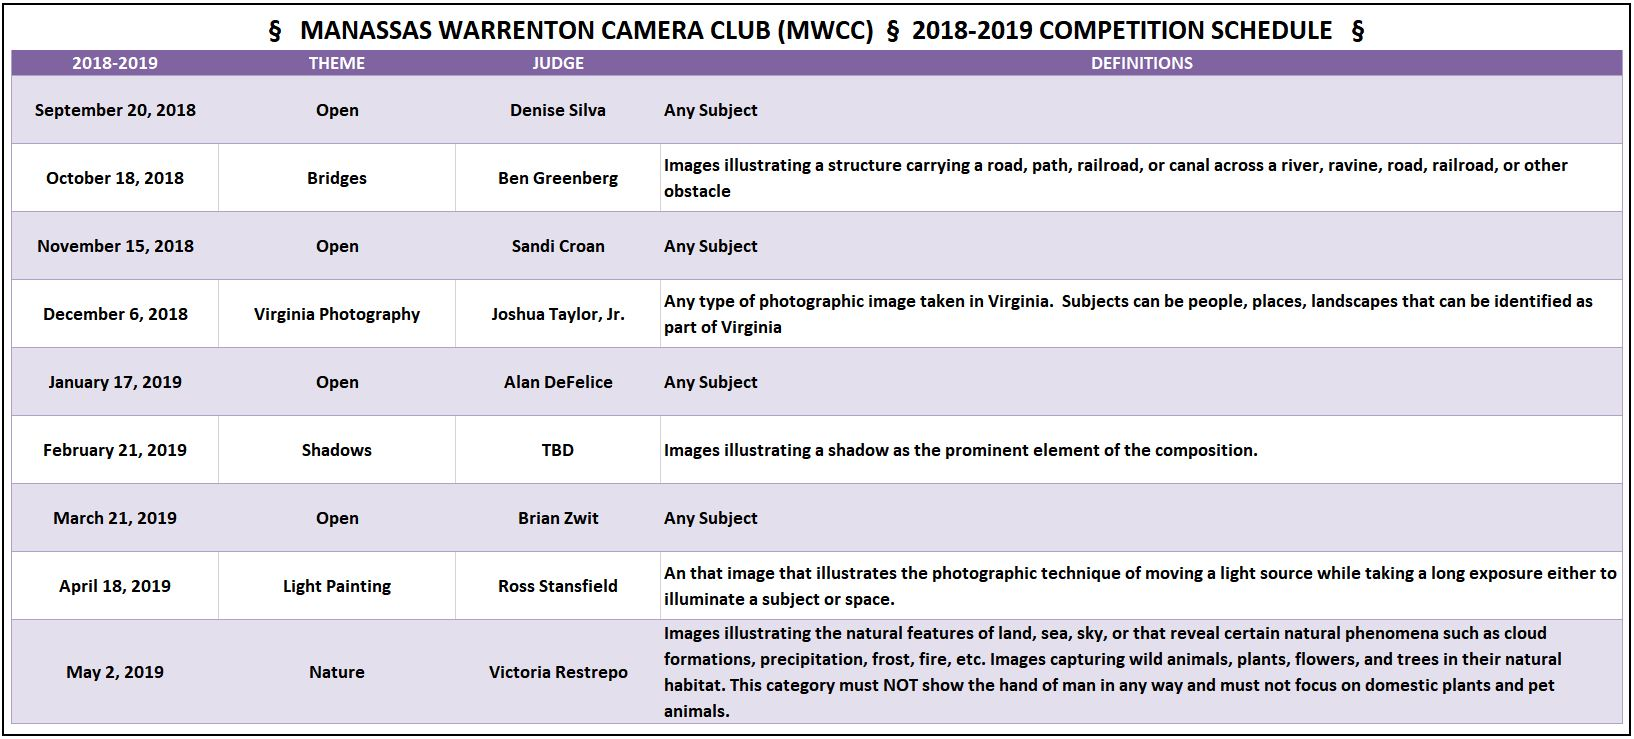 MWCC Competition Theme Schedule 2018-2019